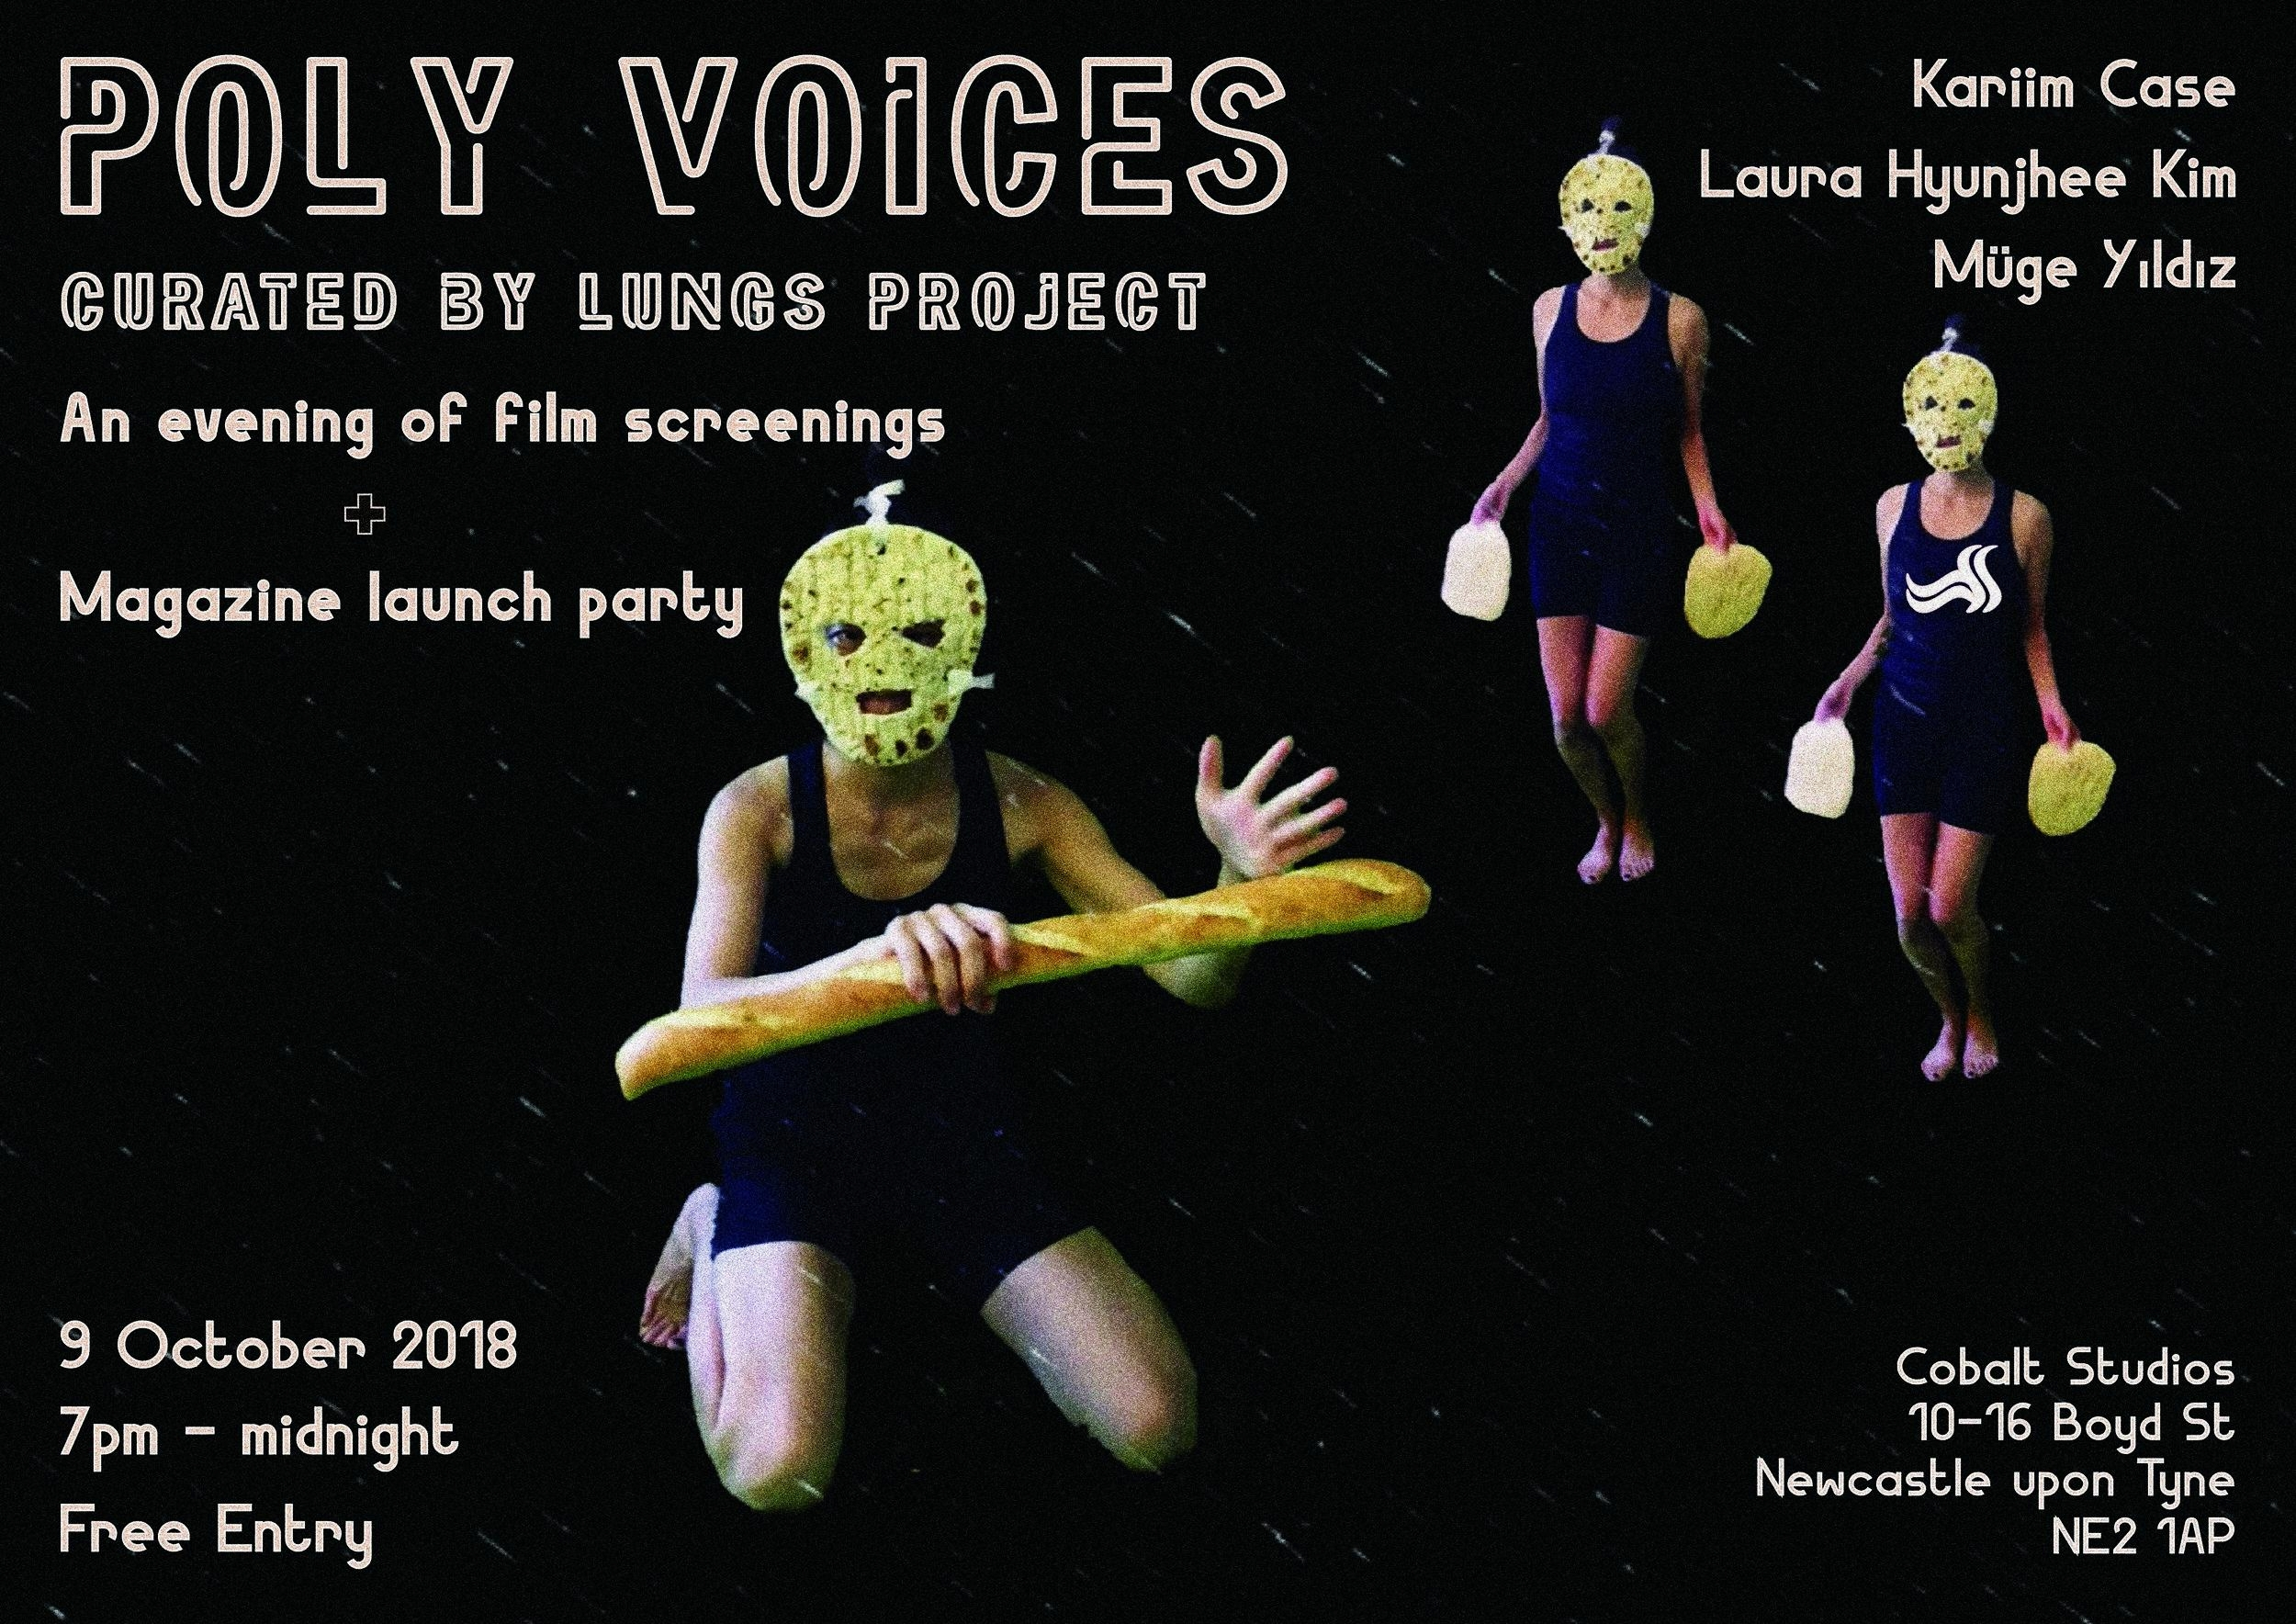 poly voices poster.jpg